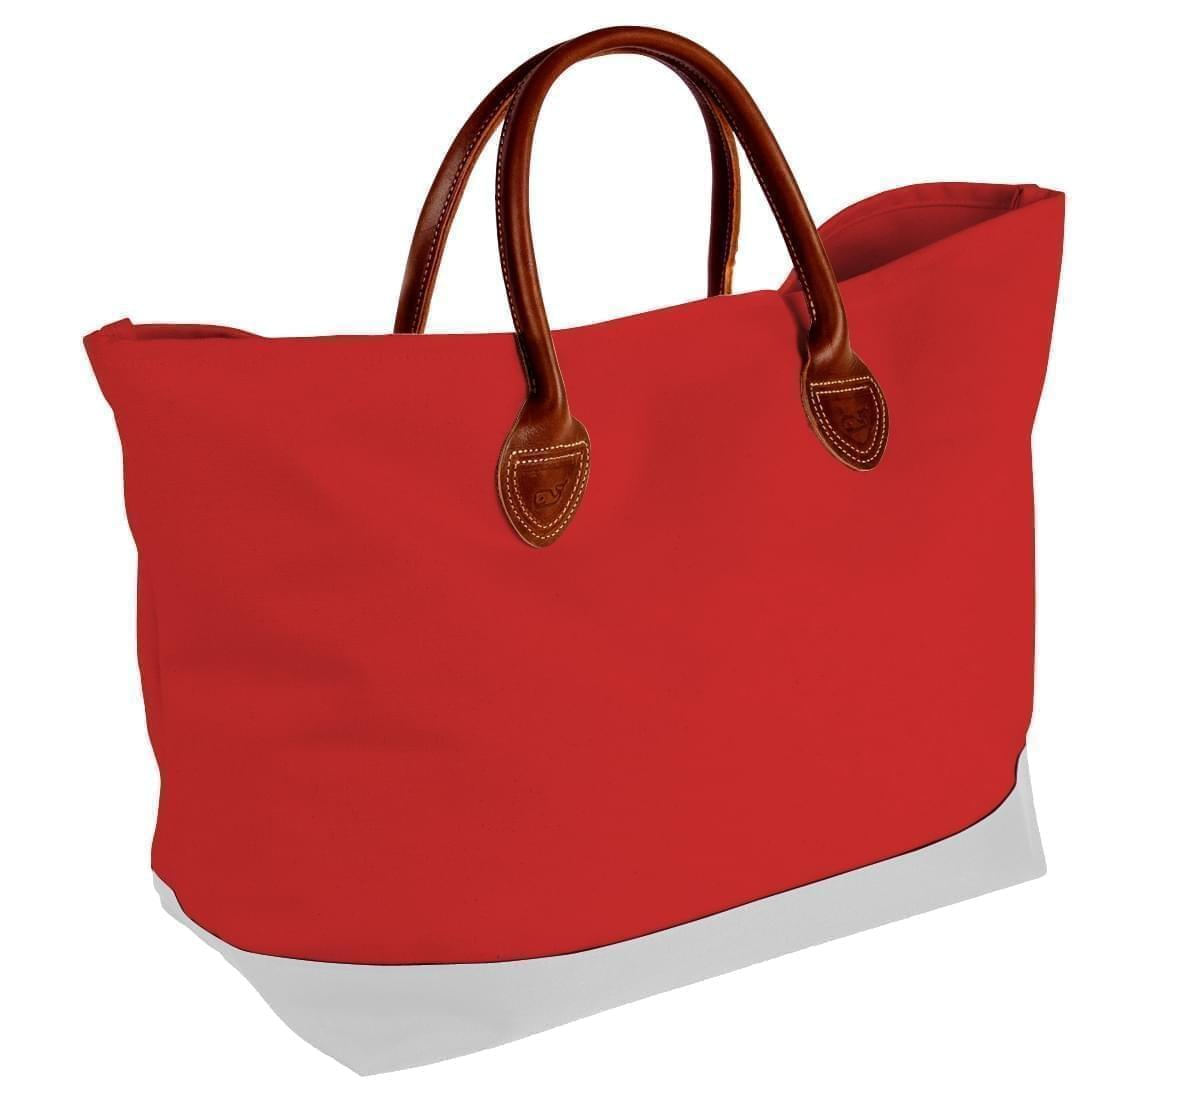 USA Made Canvas Leather Handle Totes, Red-White, 10899-PE9